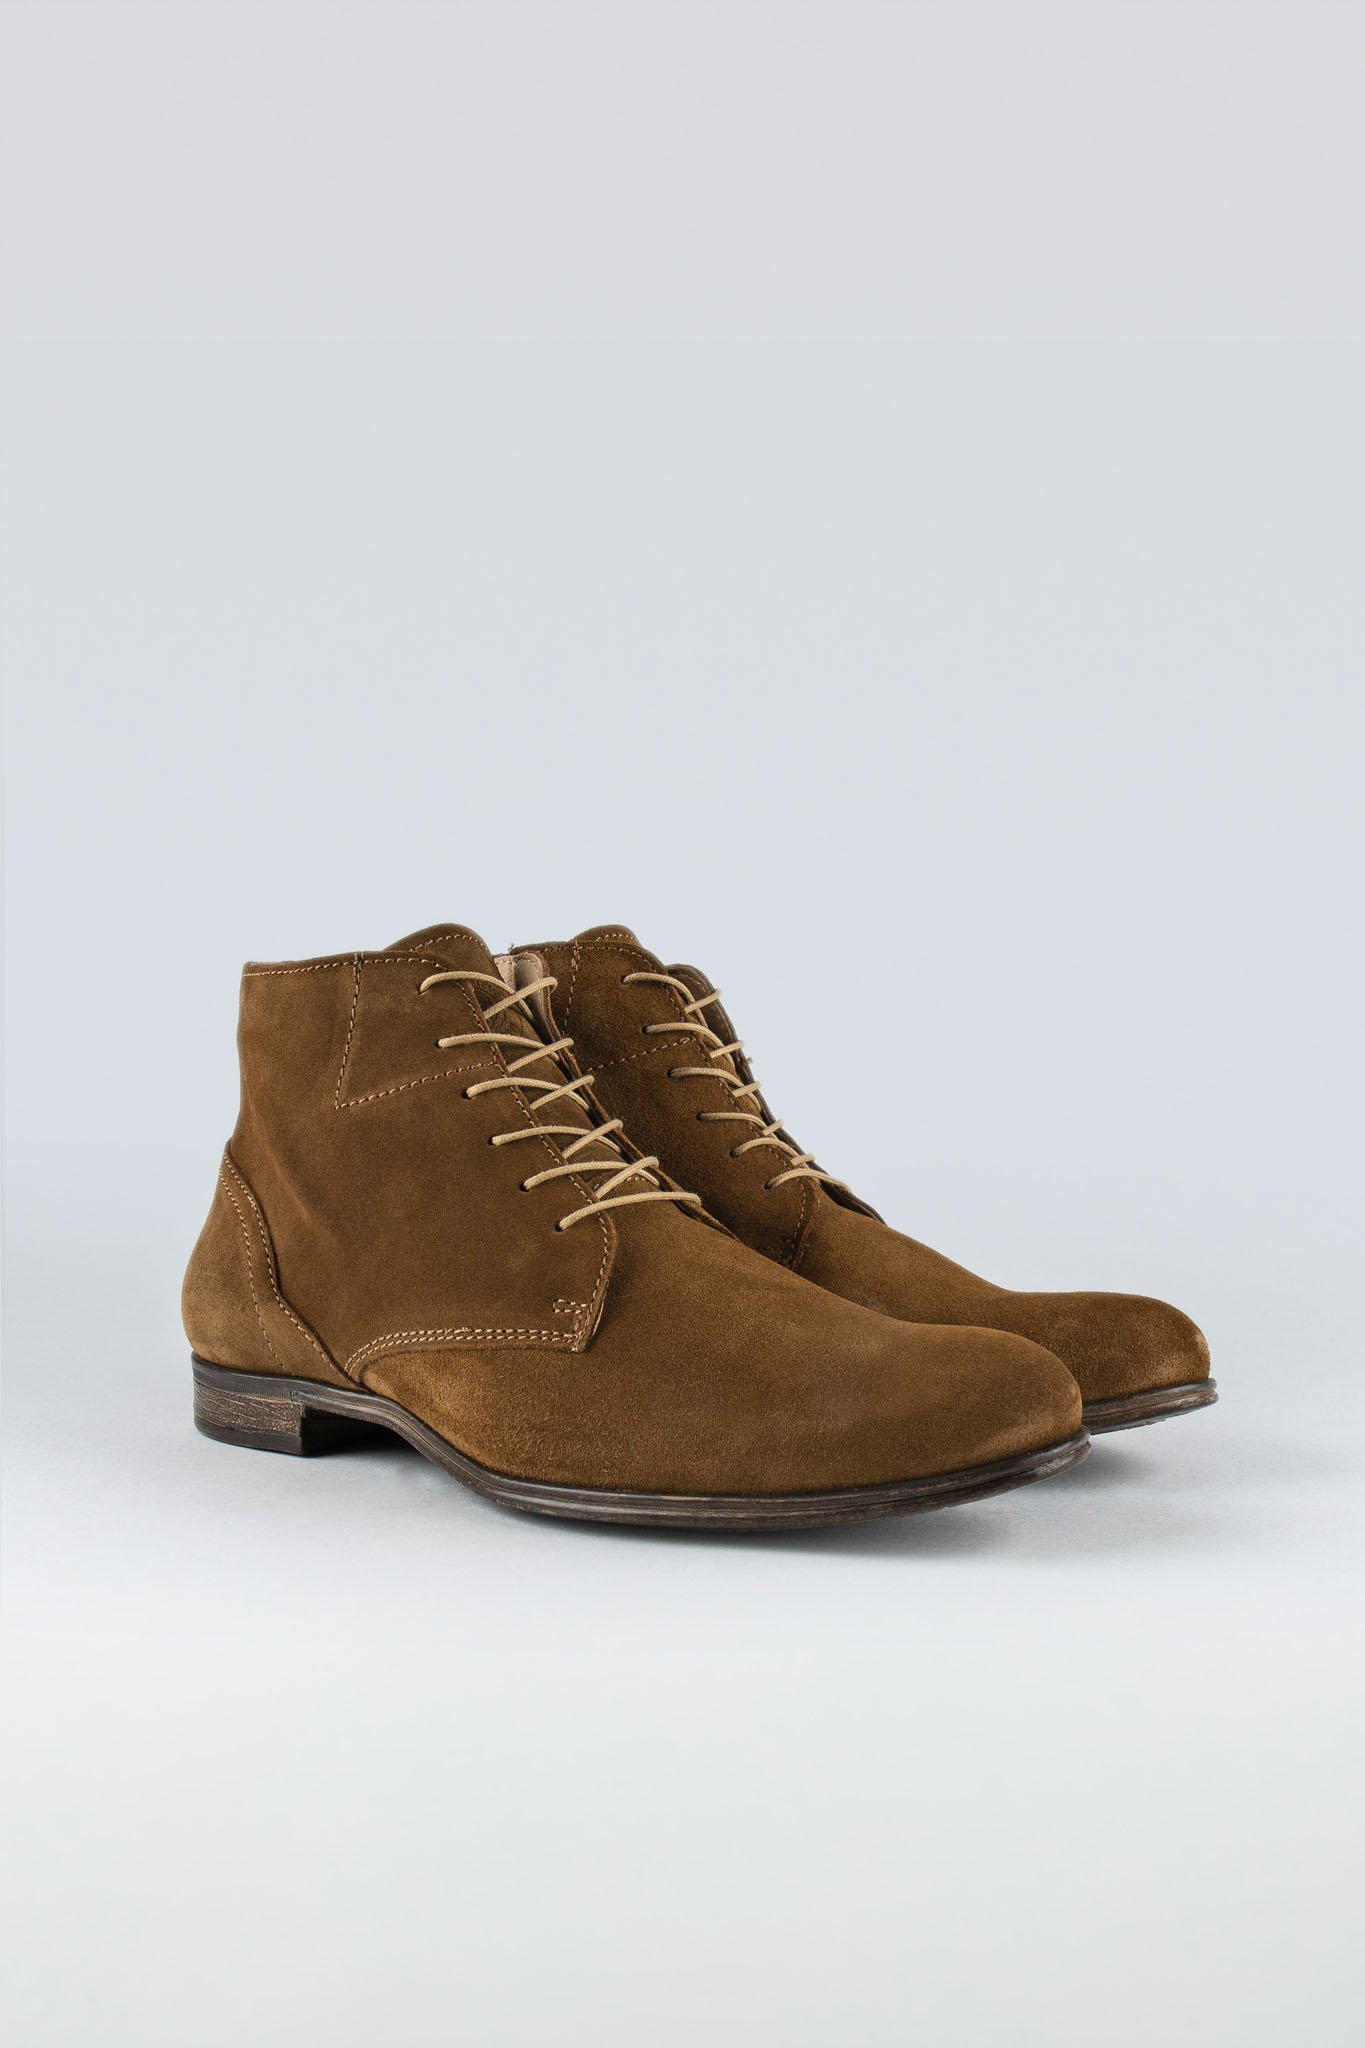 Dirty Mid Tobacco Suede